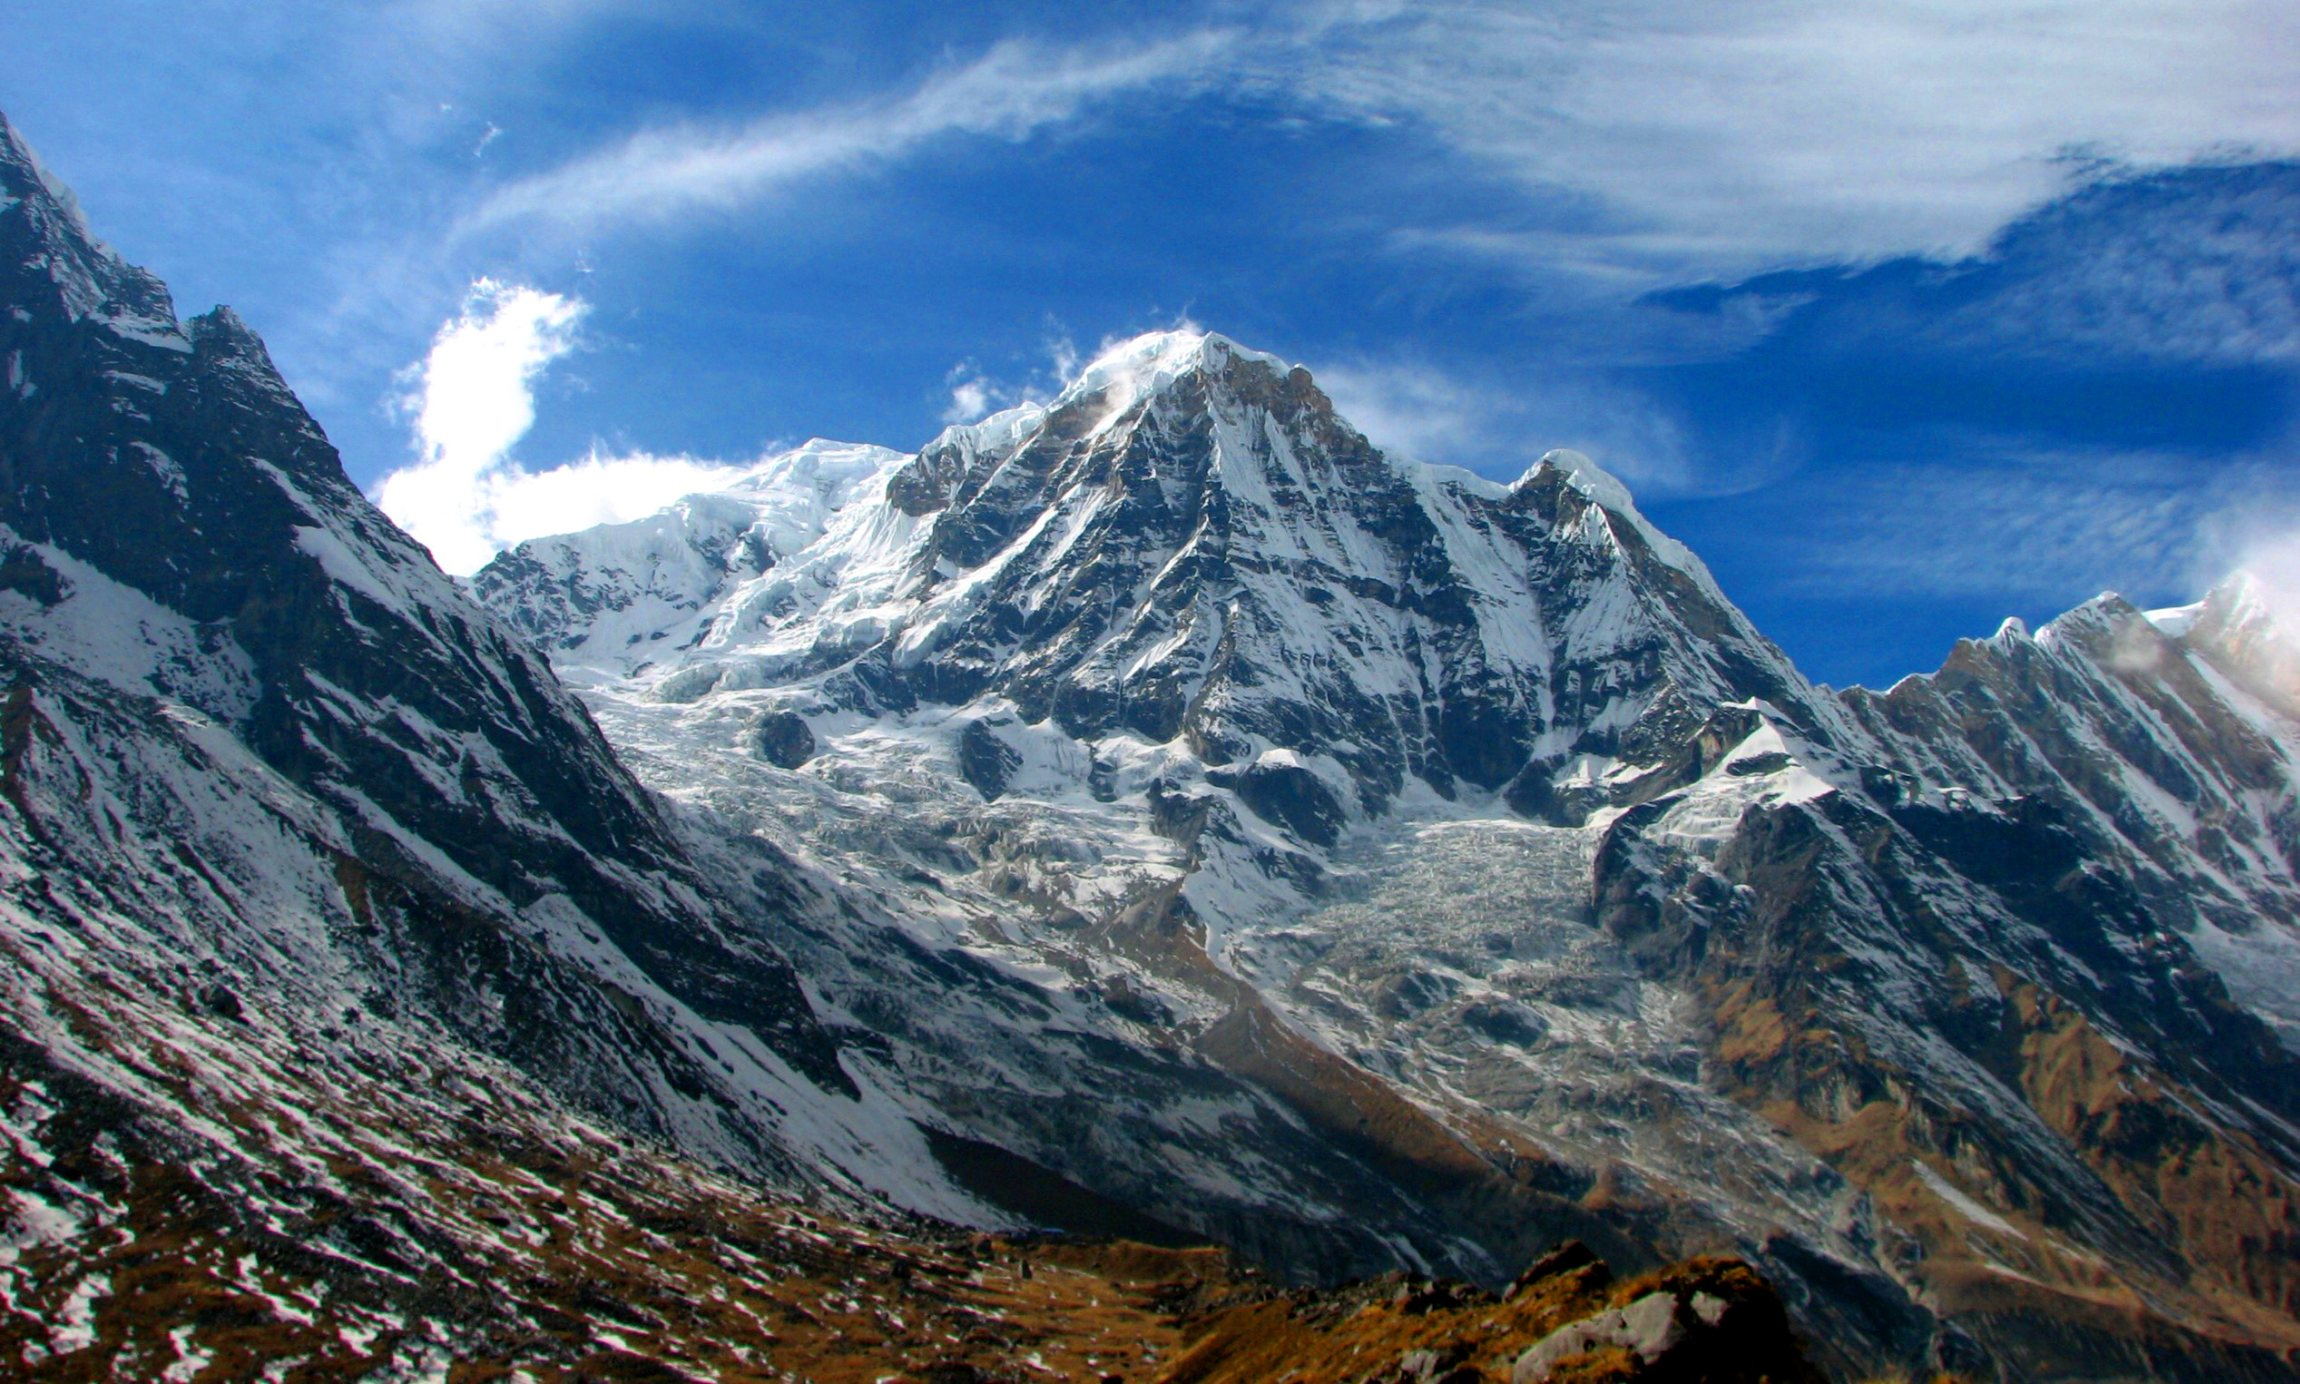 4 Himalayas HD Wallpapers Backgrounds 2300x1384